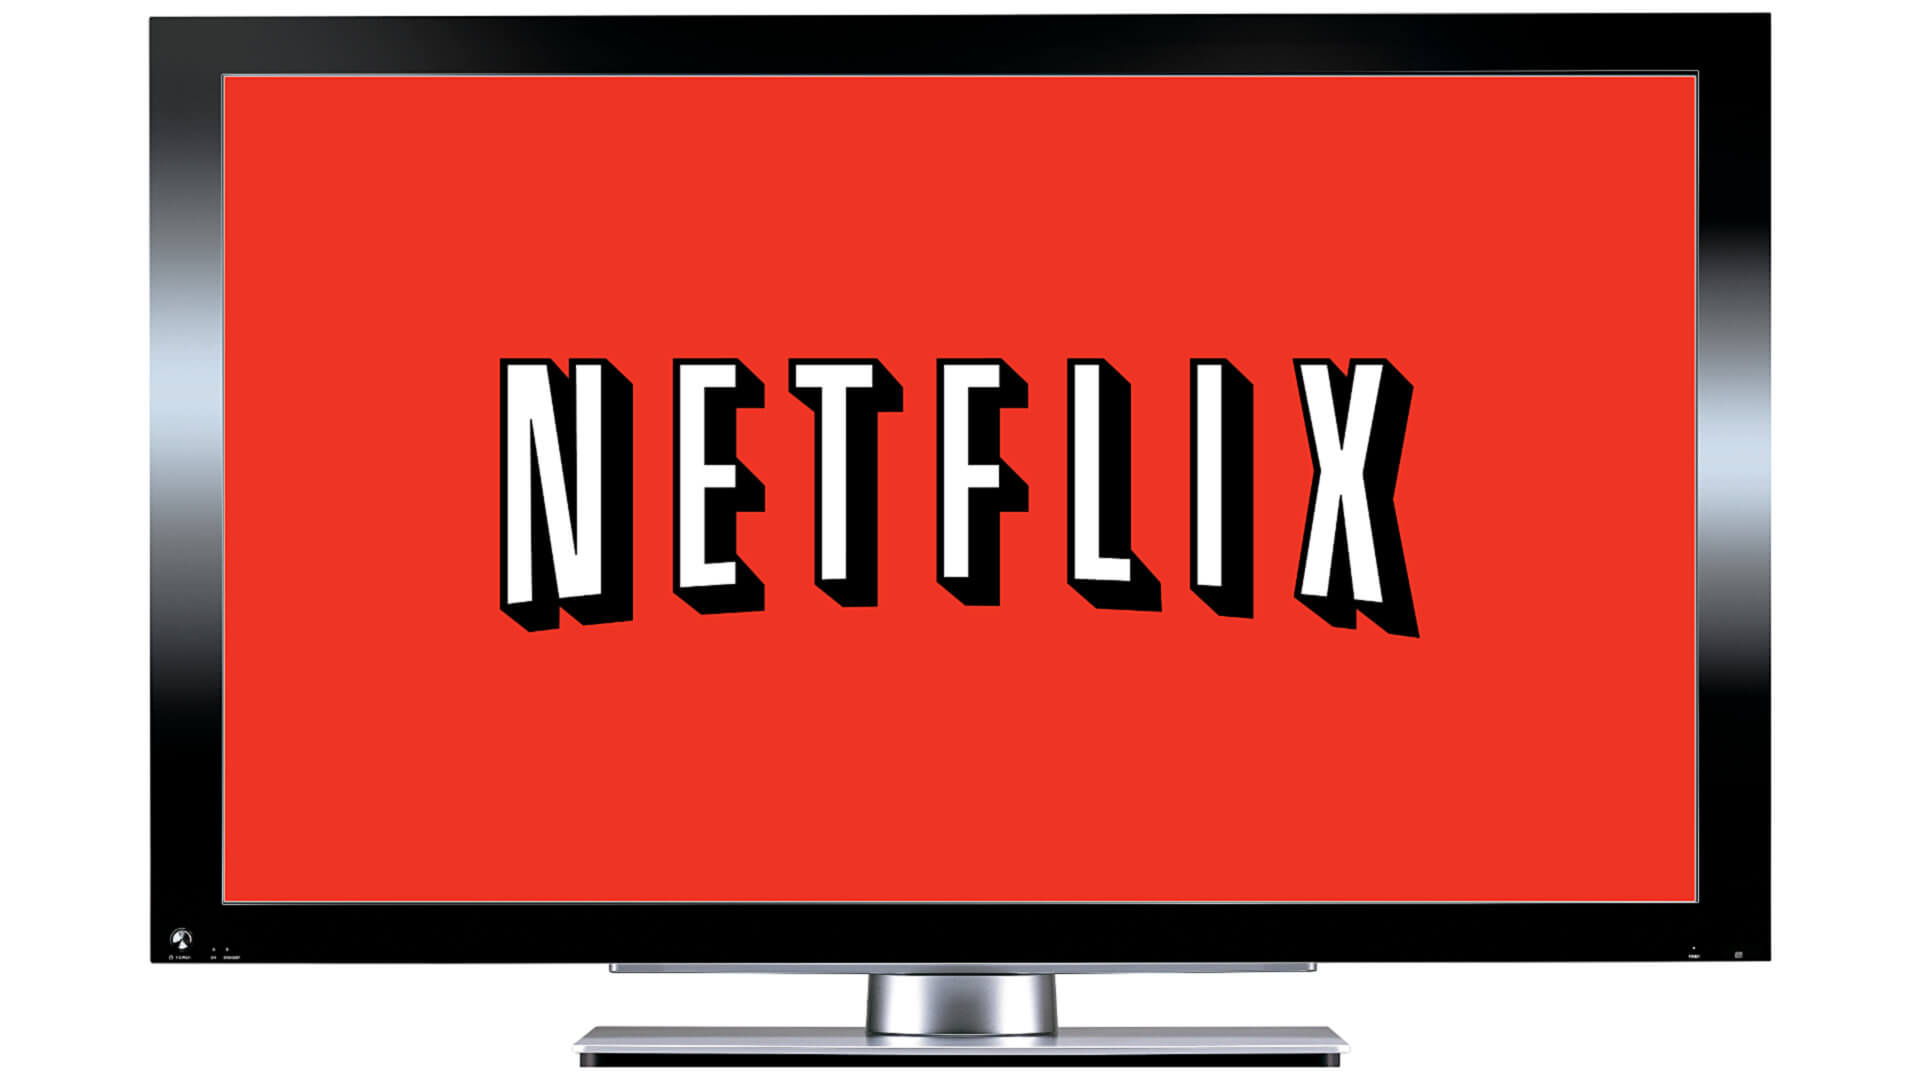 Netflix Gives Windows 10 Users The Option To Download And Watch Offline